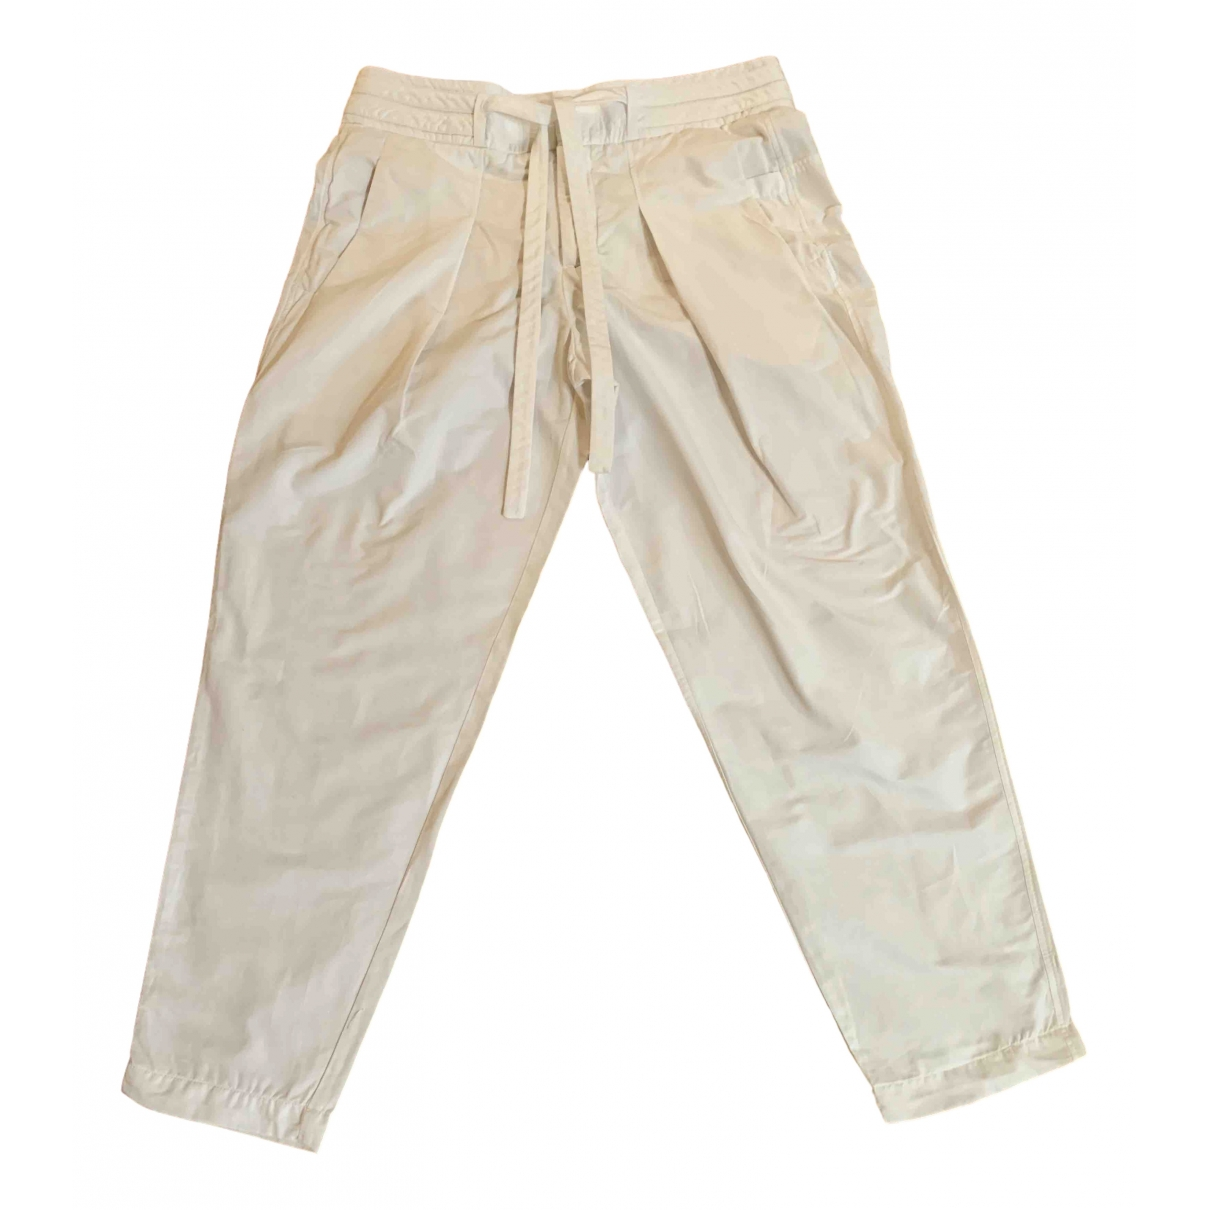 Helmut Lang \N White Cotton Trousers for Women 6 US